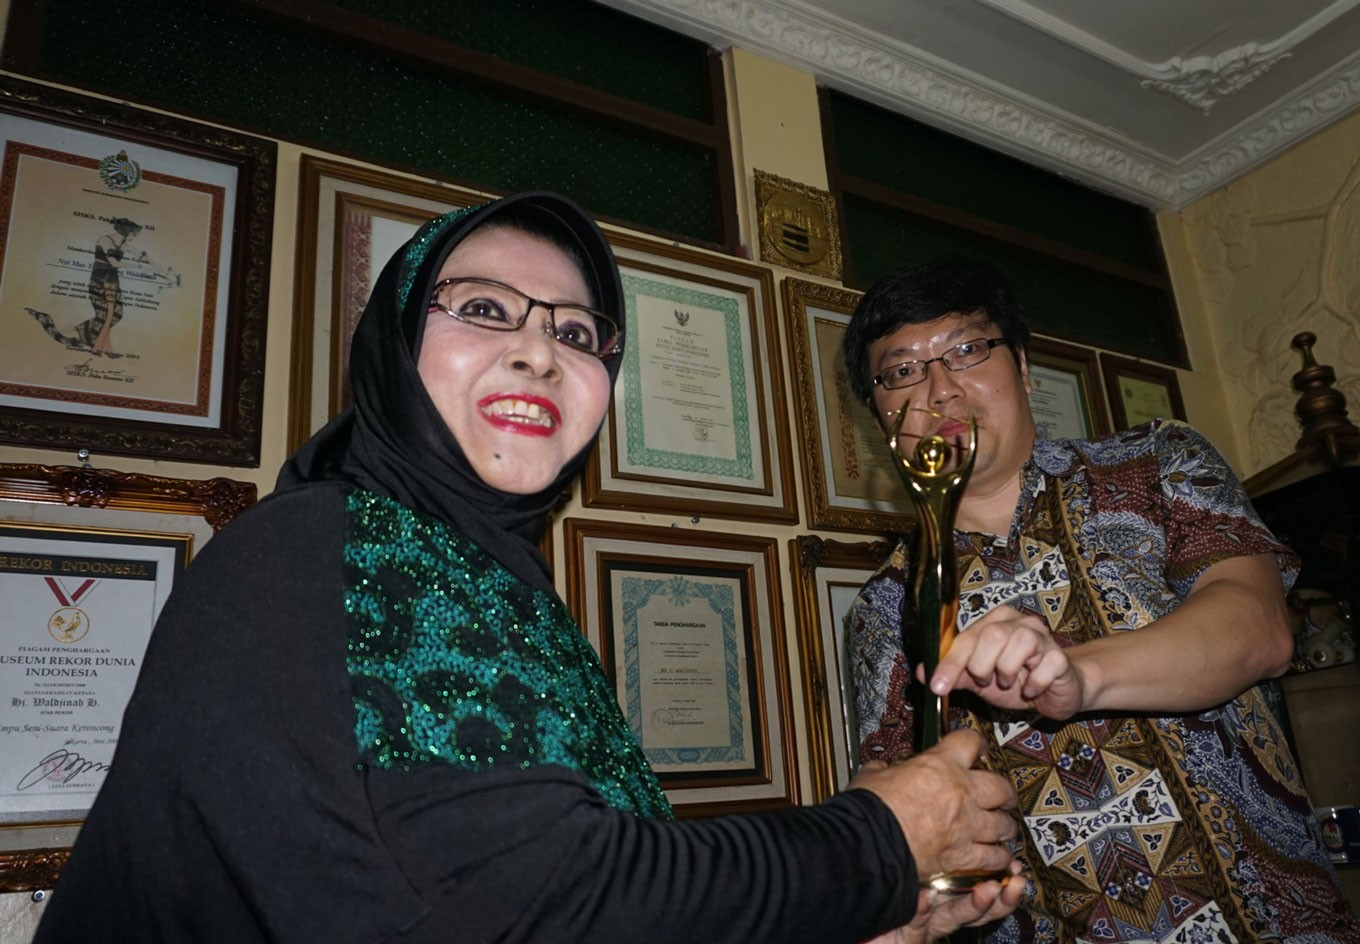 'Keroncong' maestro Waldjinah receives fifth AMI award